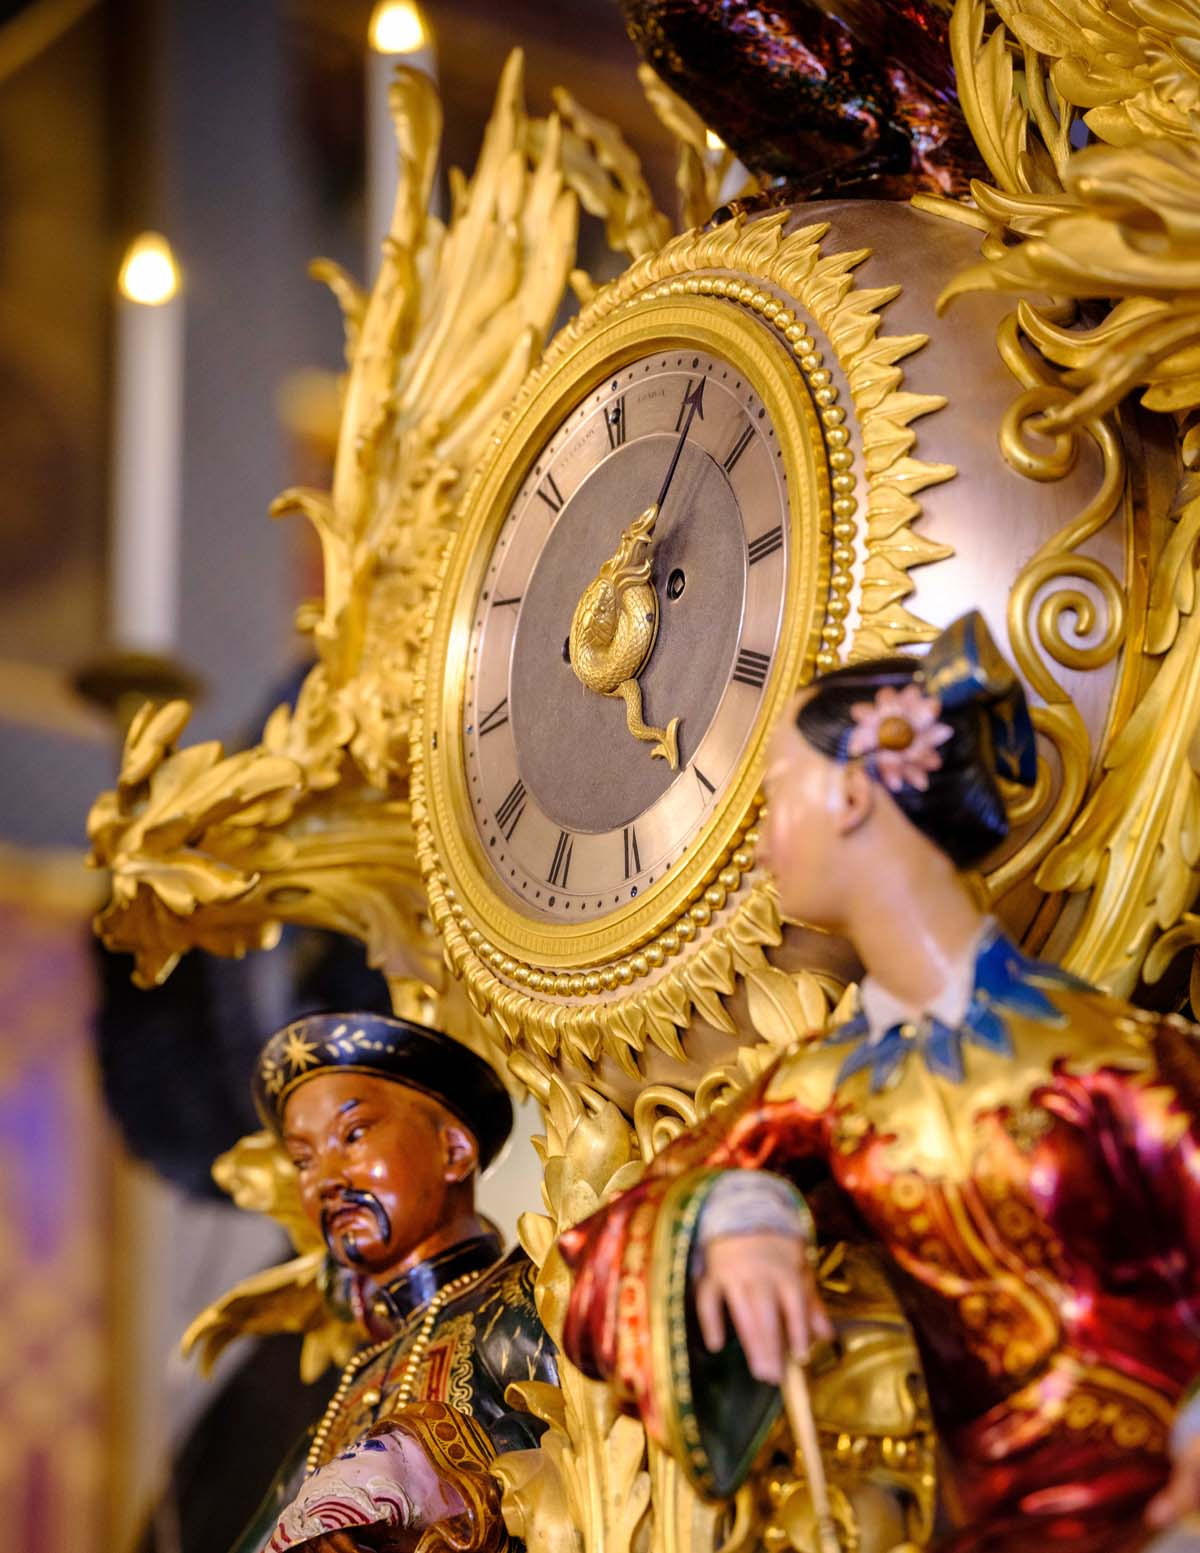 a close up of two Chinese figures on a Chinoiserie clock